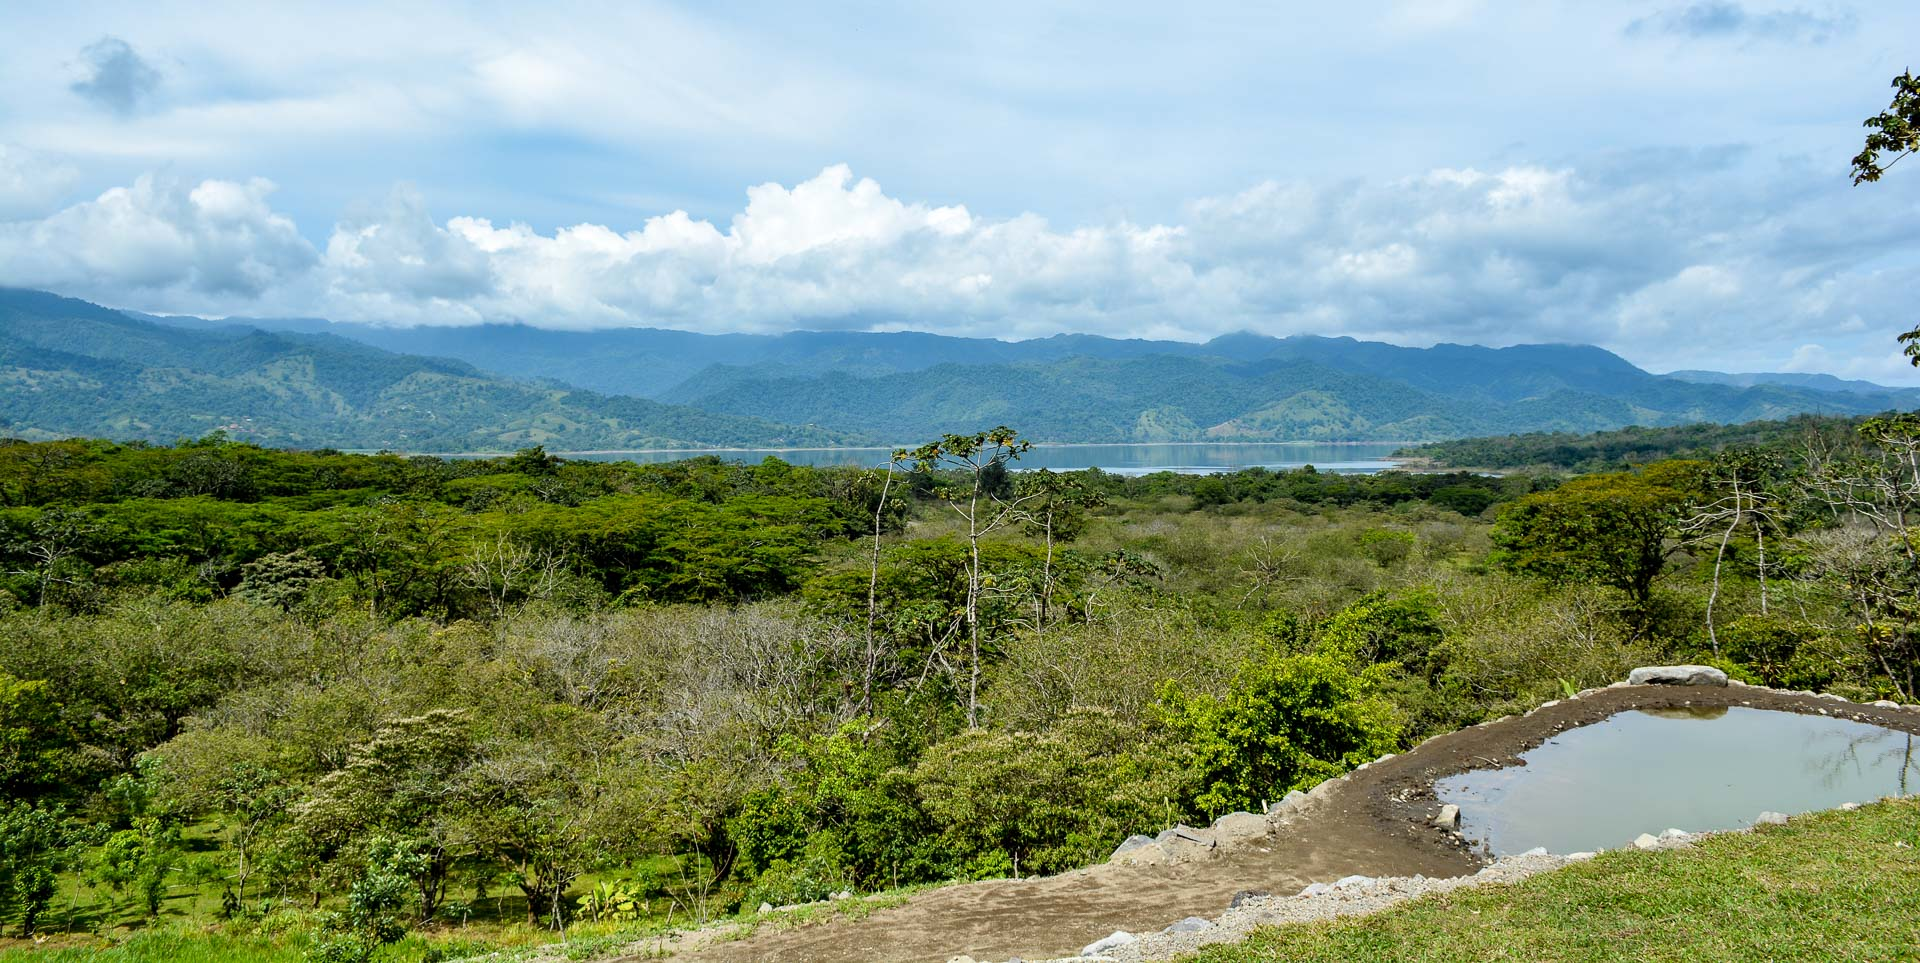 From the same viewpoint we could see the Arenal Lake